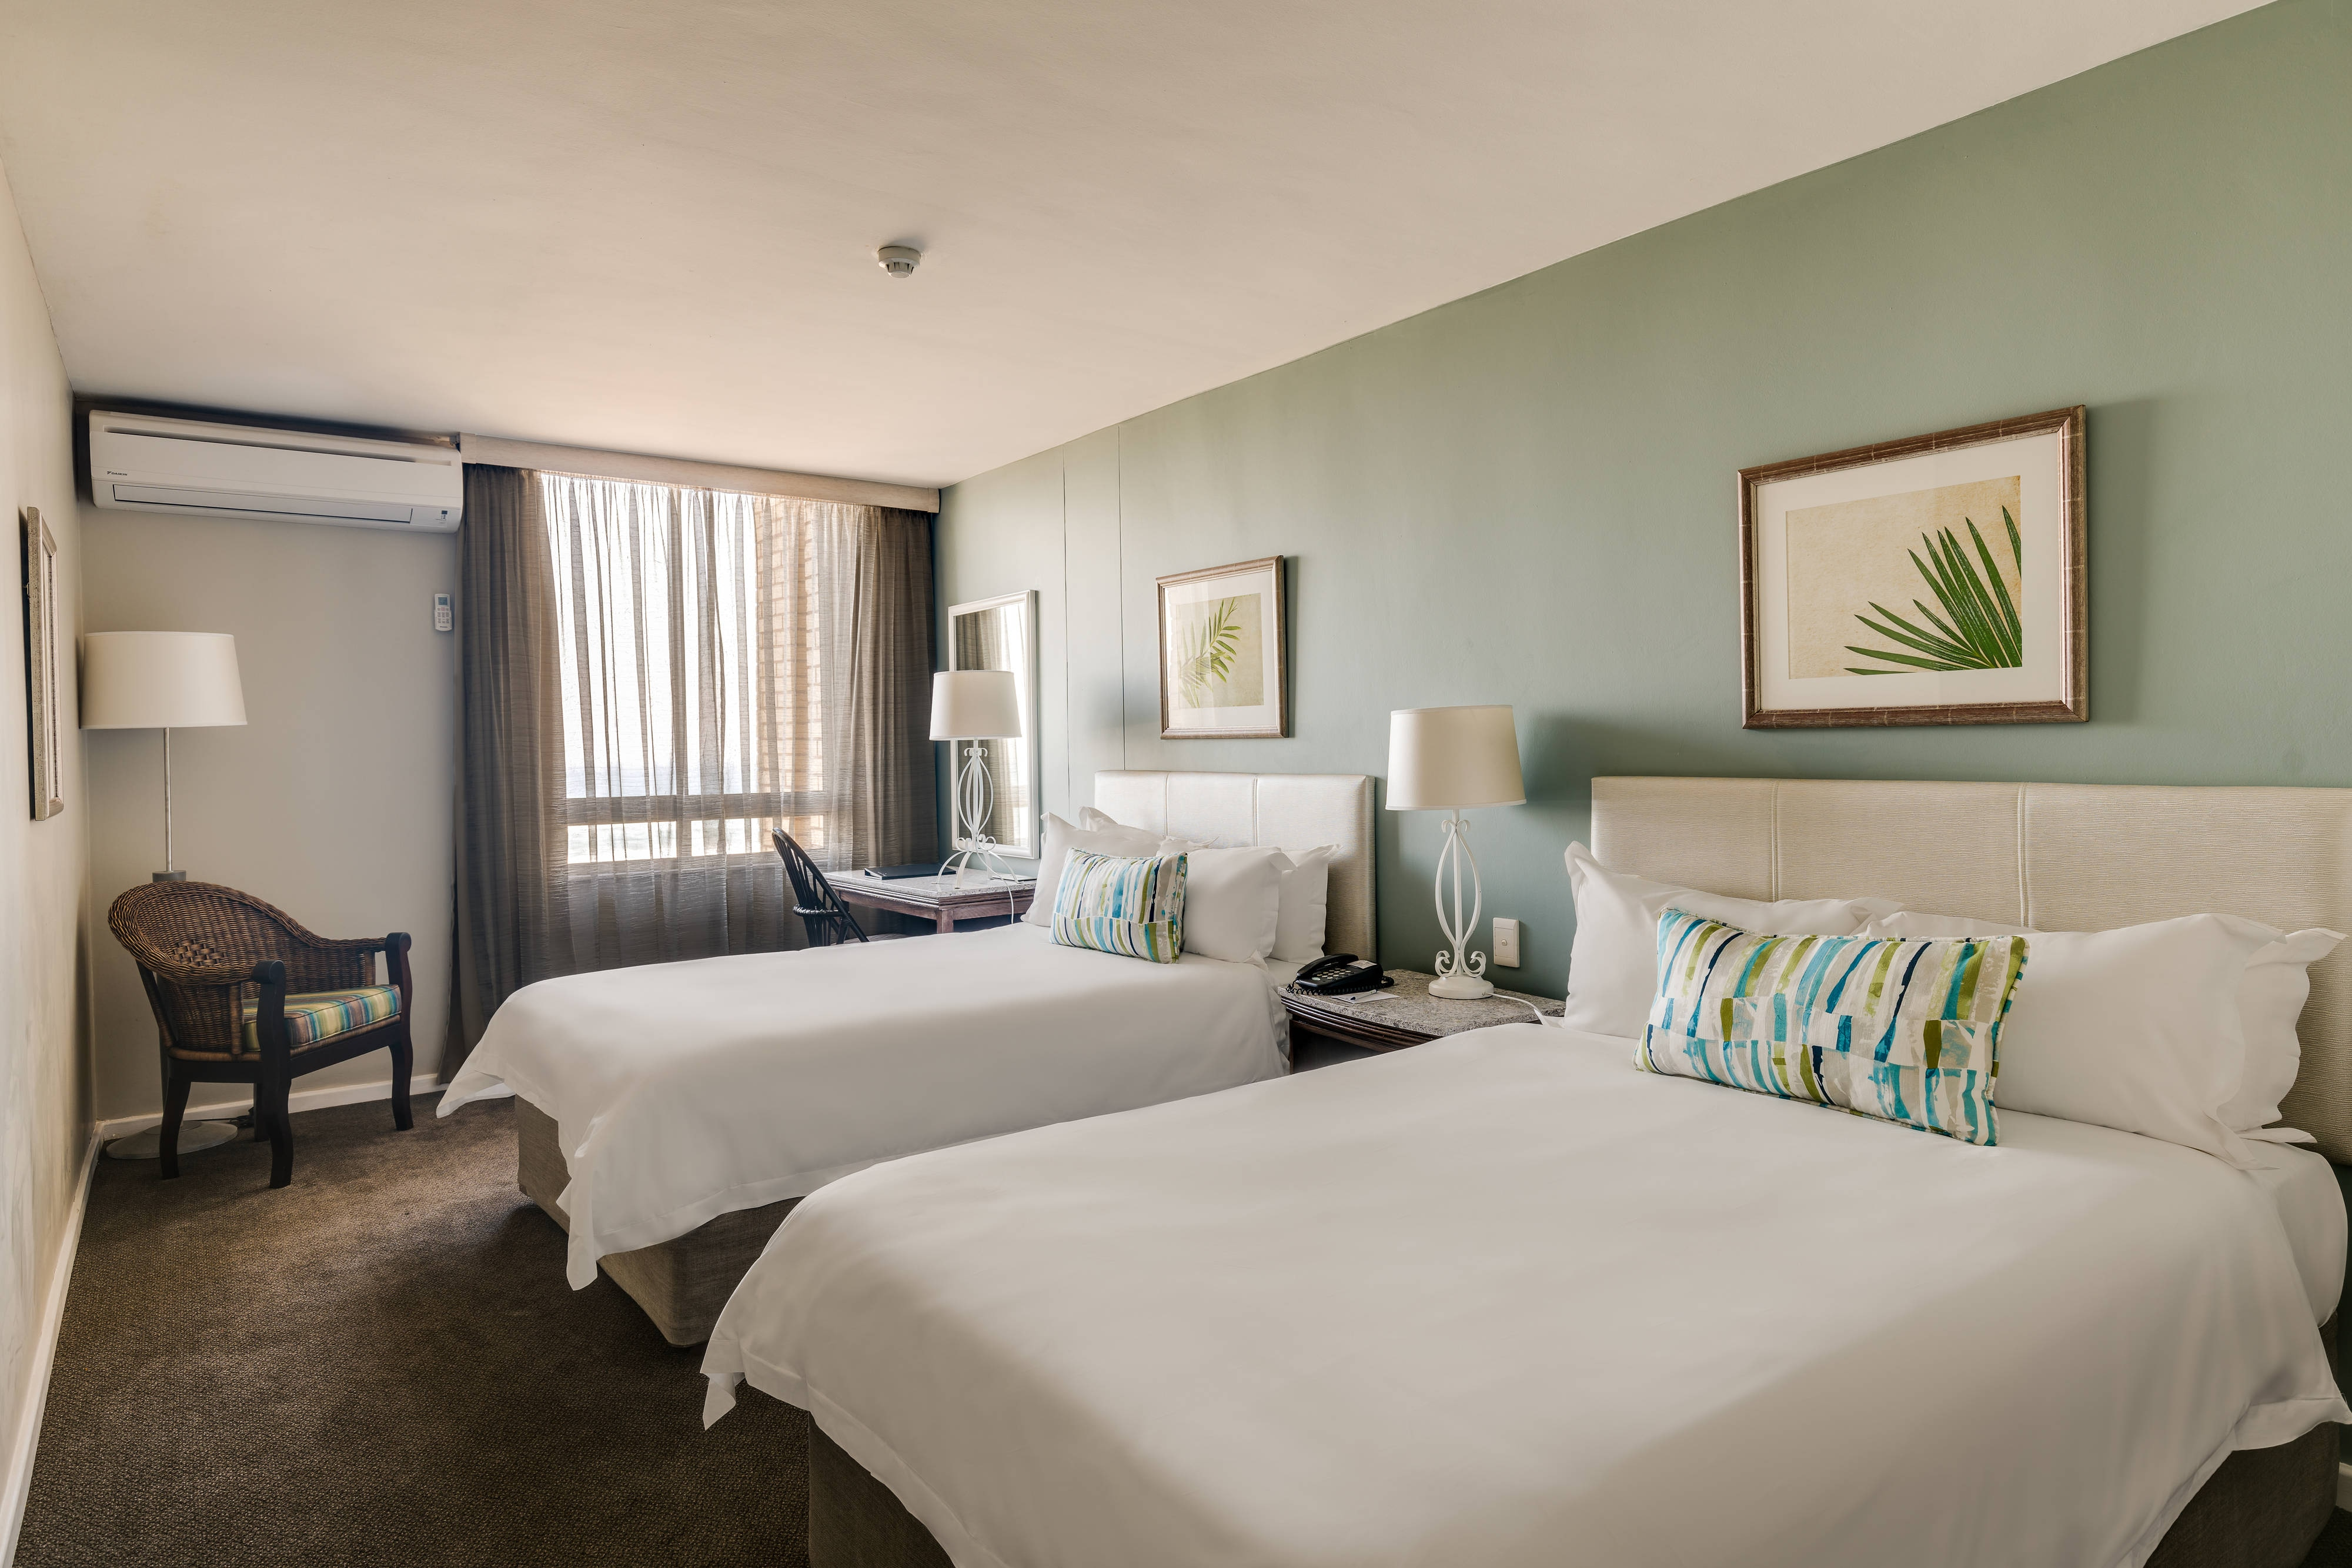 Deluxe Double/Double Guest Room